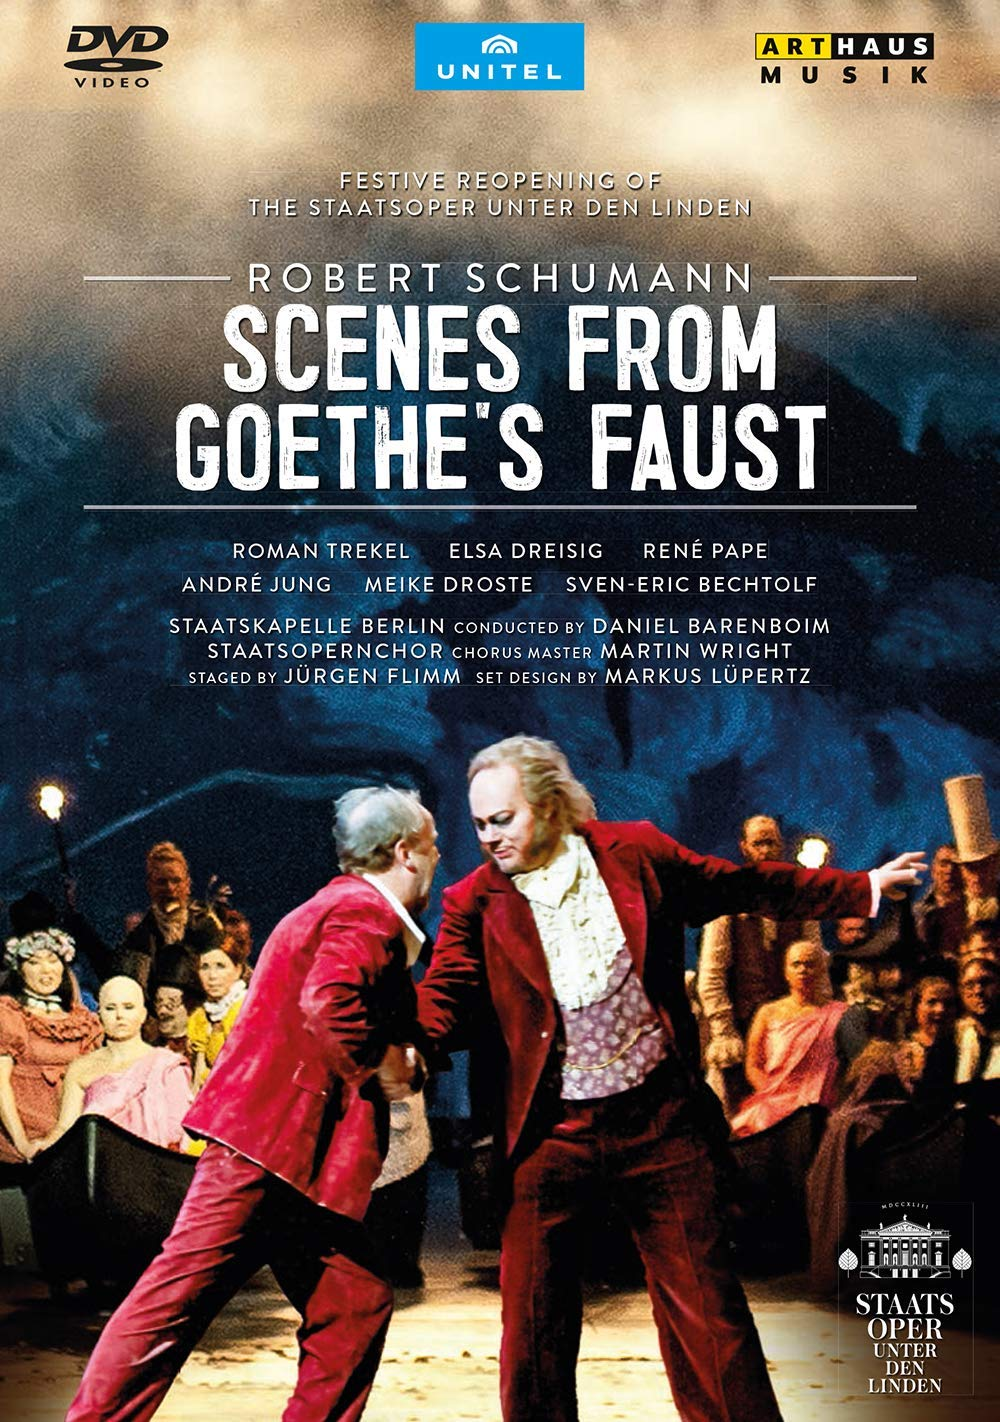 Review of SCHUMANN Scenes from Goethe's Faust (Barenboim)